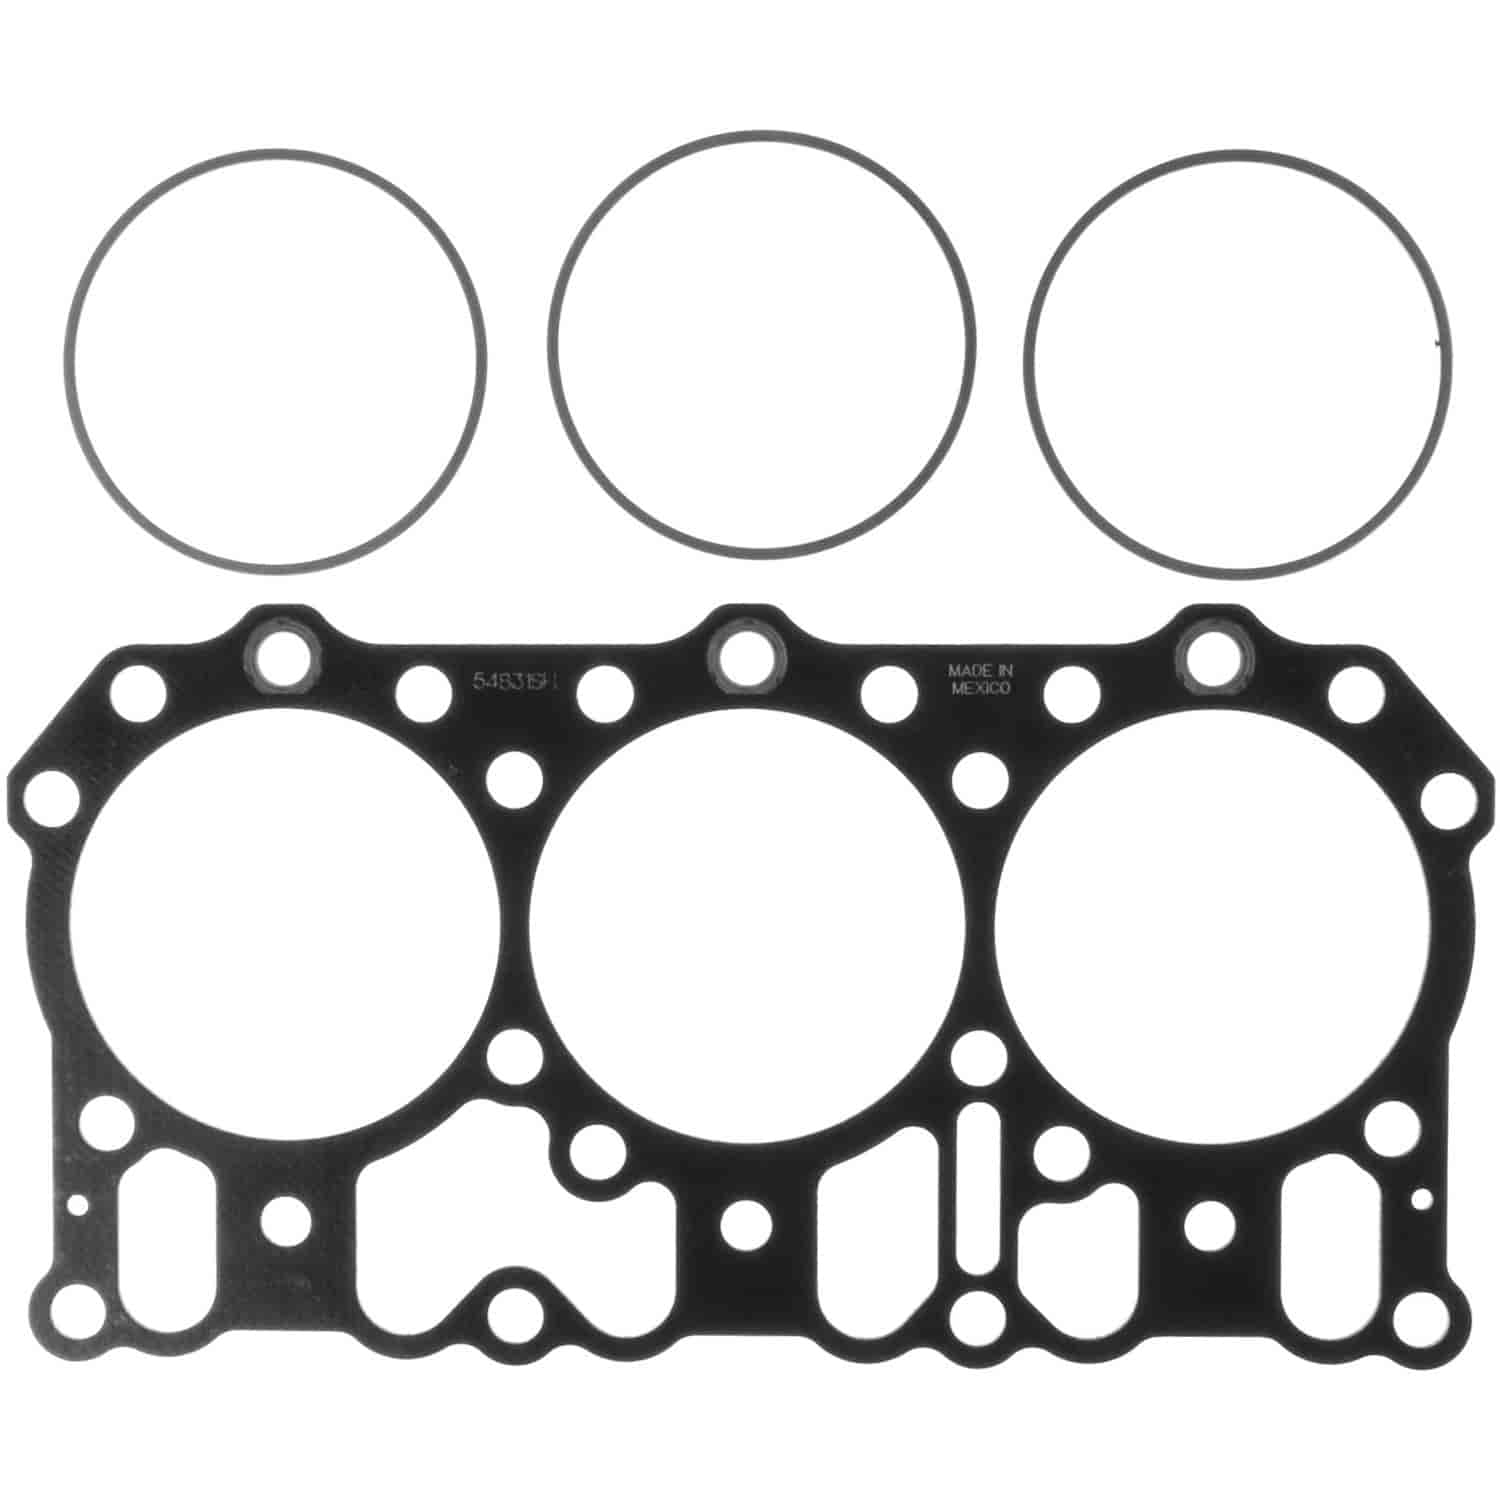 Clevite MAHLE Cylinder Head Gasket Mack E7 Engines Late Model with Flat  Fire Rings